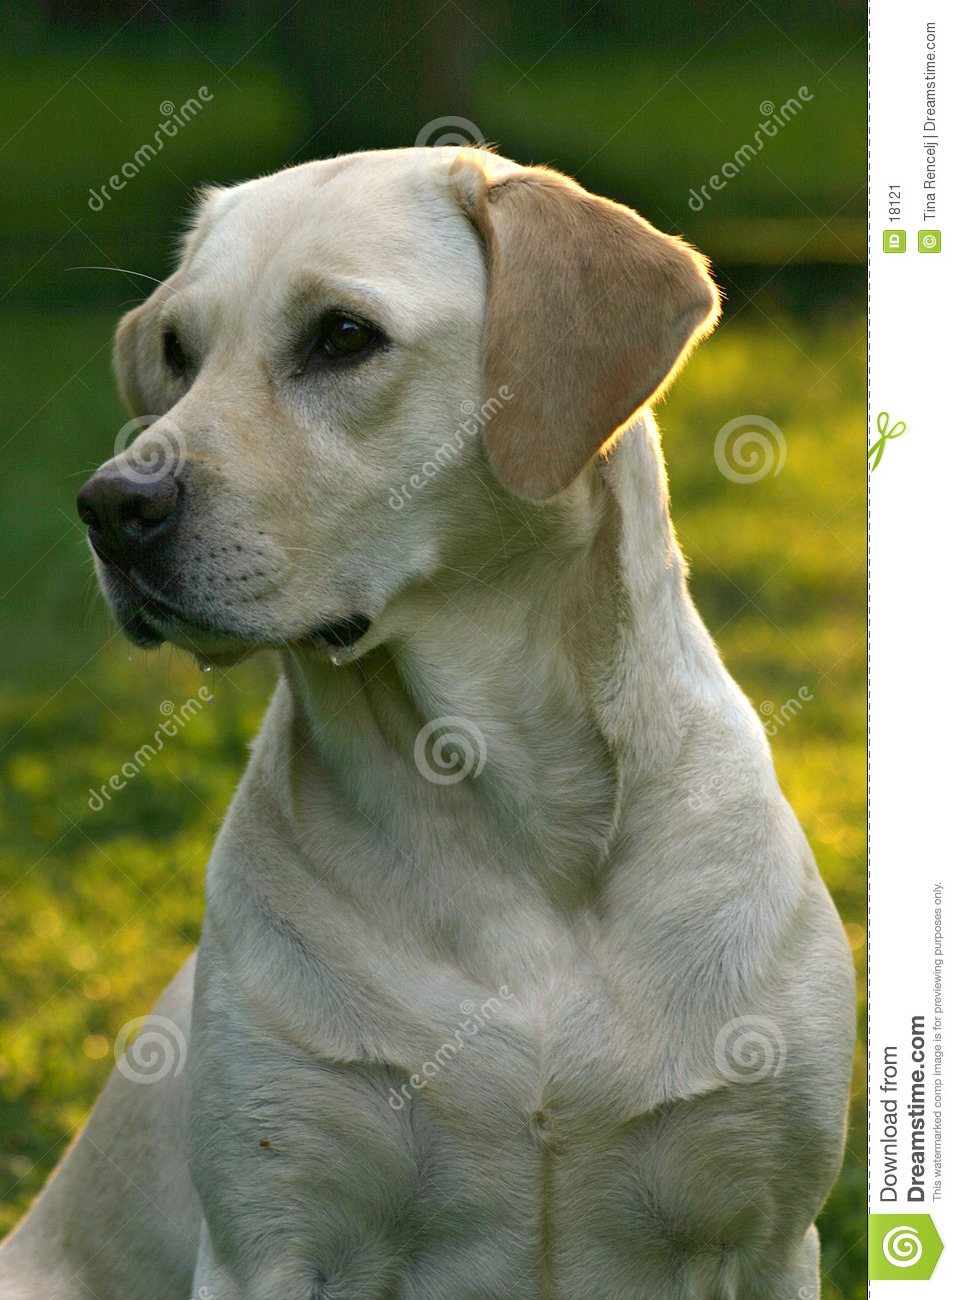 Retriever labrador собаки